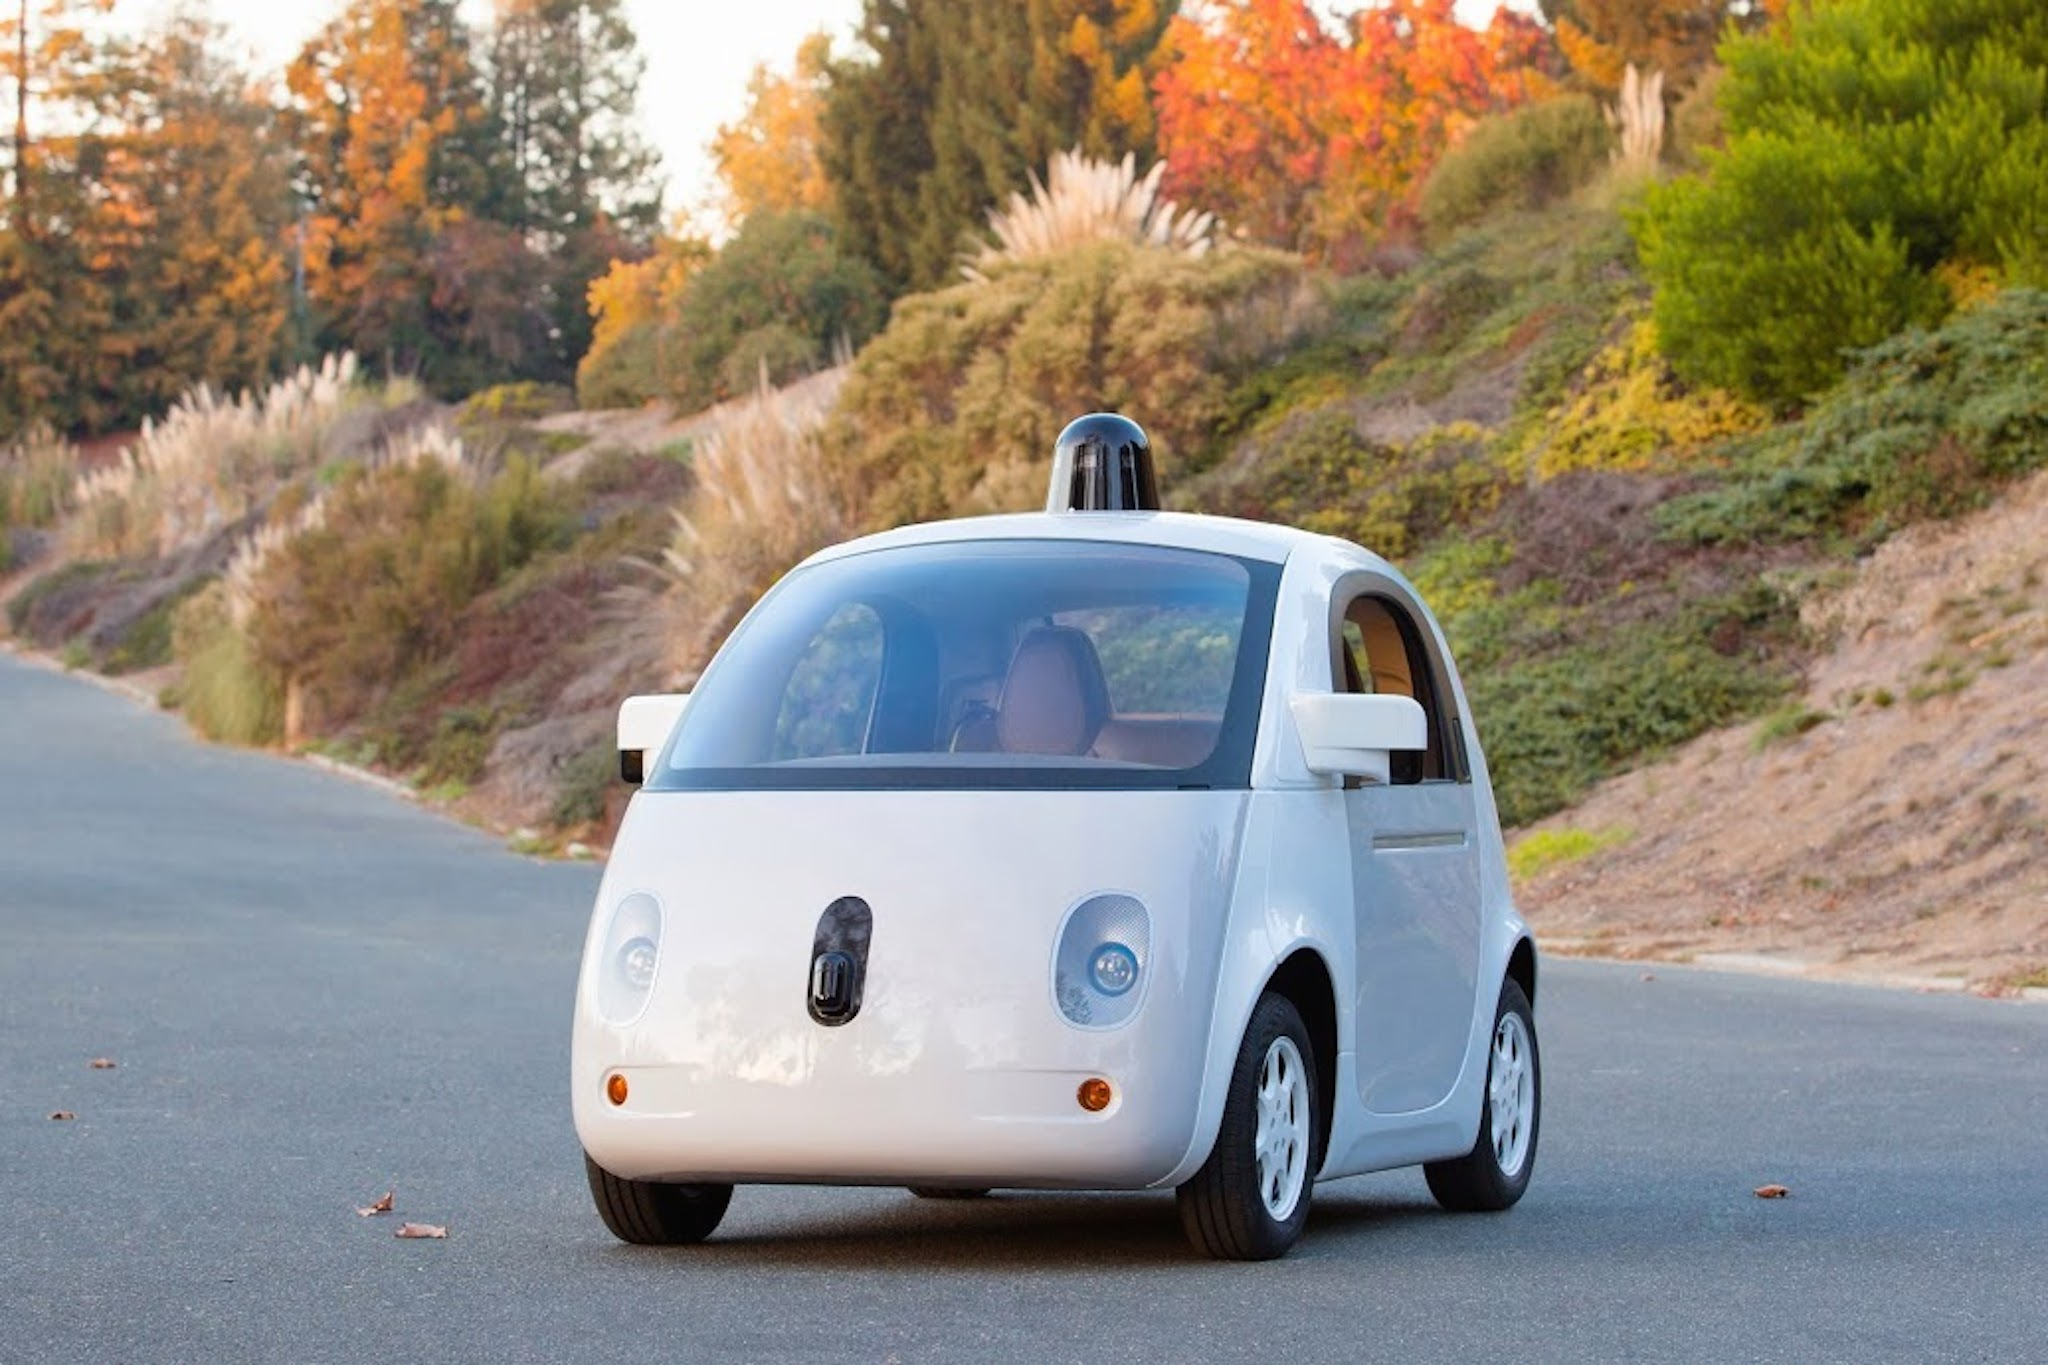 google-autonomous-car-prototype.jpeg1